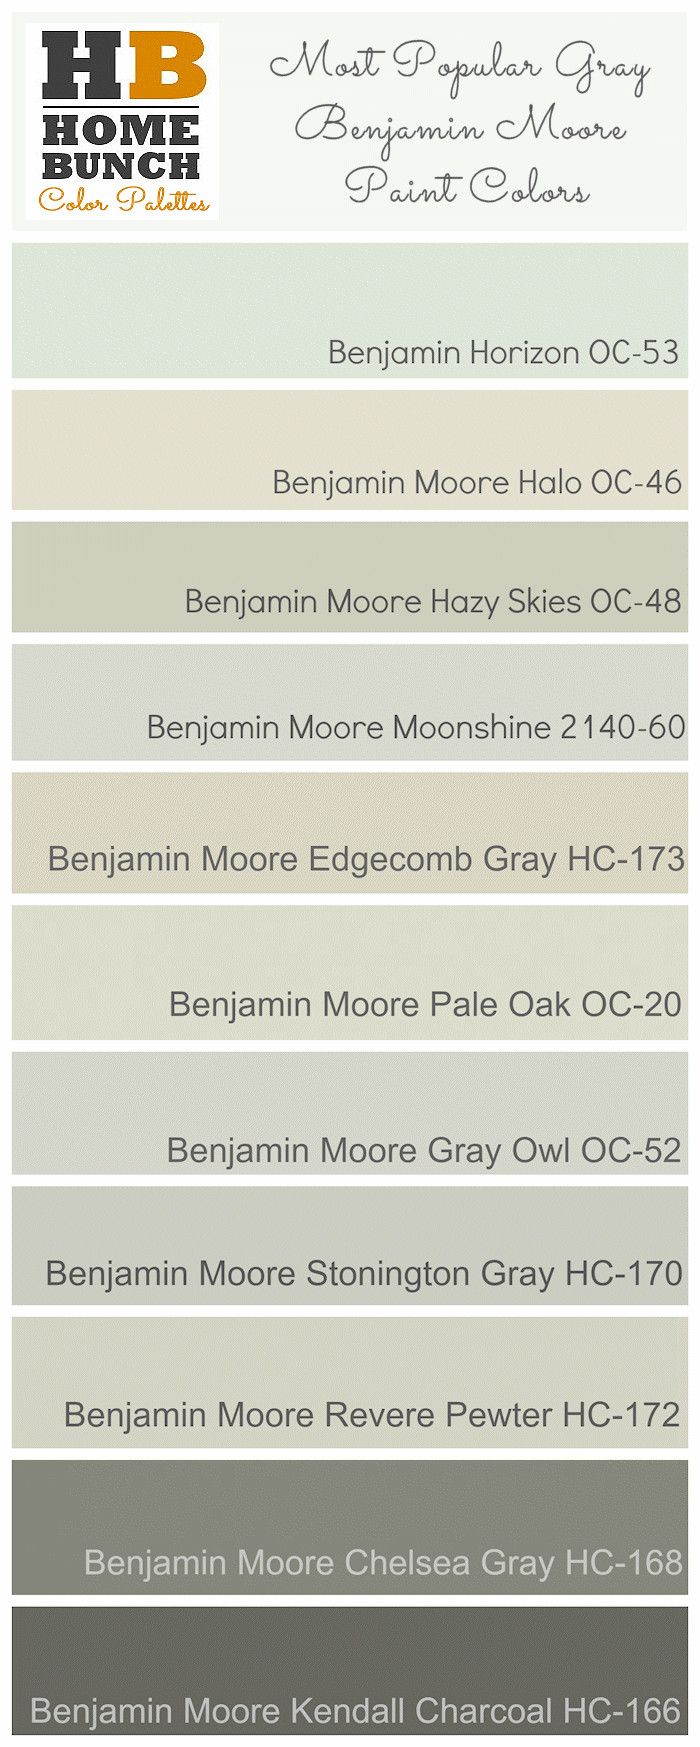 Most Popular Gray Benjamin Moore Paint Colors Benjamin